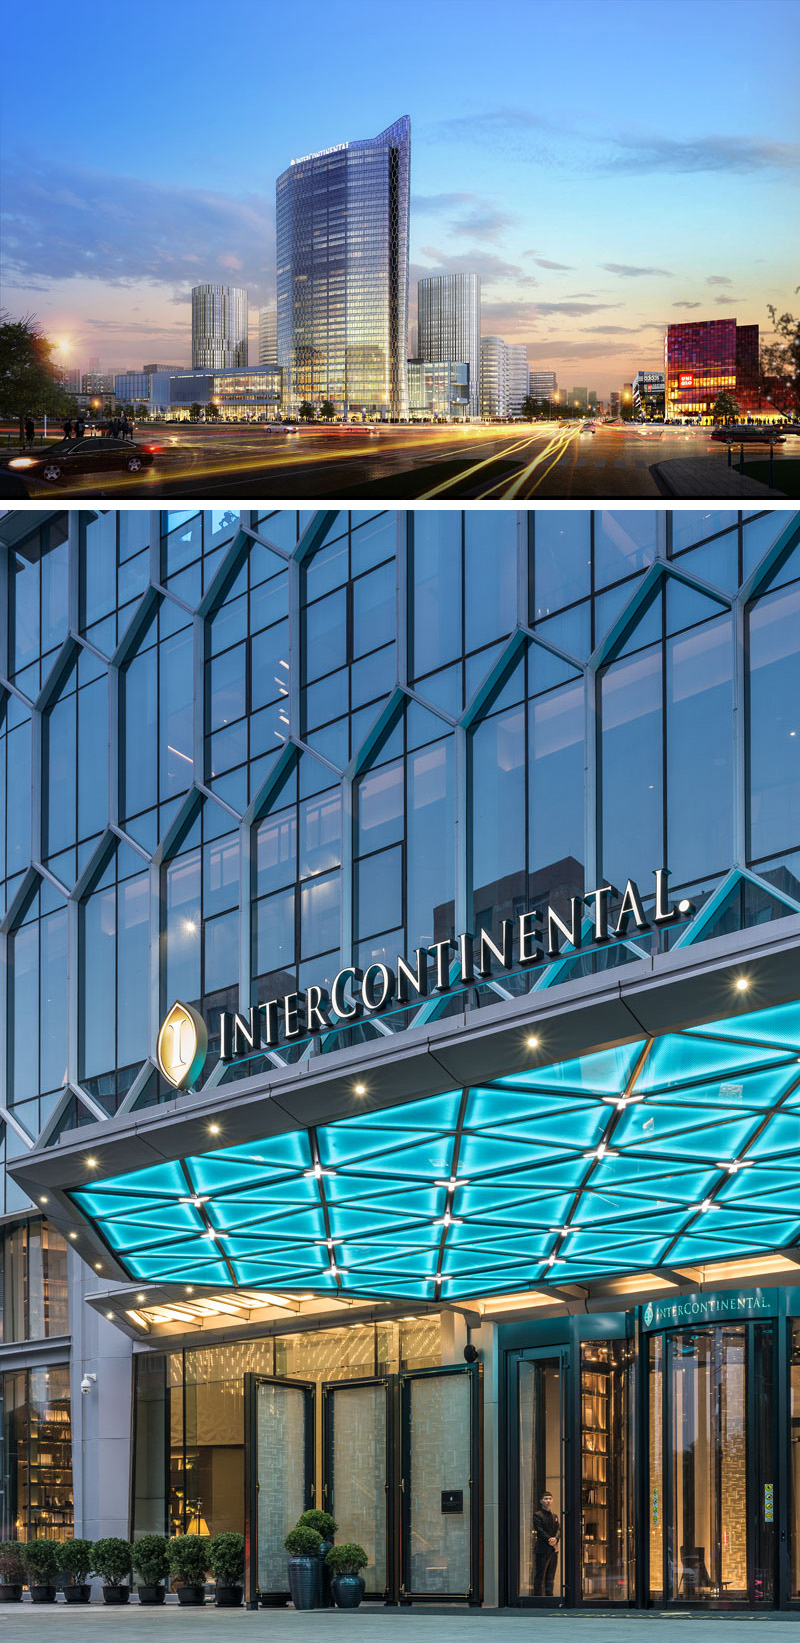 The hexagonal diamond effect of this modern building facade is where Joe Cheng began as a starting point for the design inspiration of the hotel. Before entering the hotel, neon blue, geometric shaped lights glow above the front entrance to the hotel.